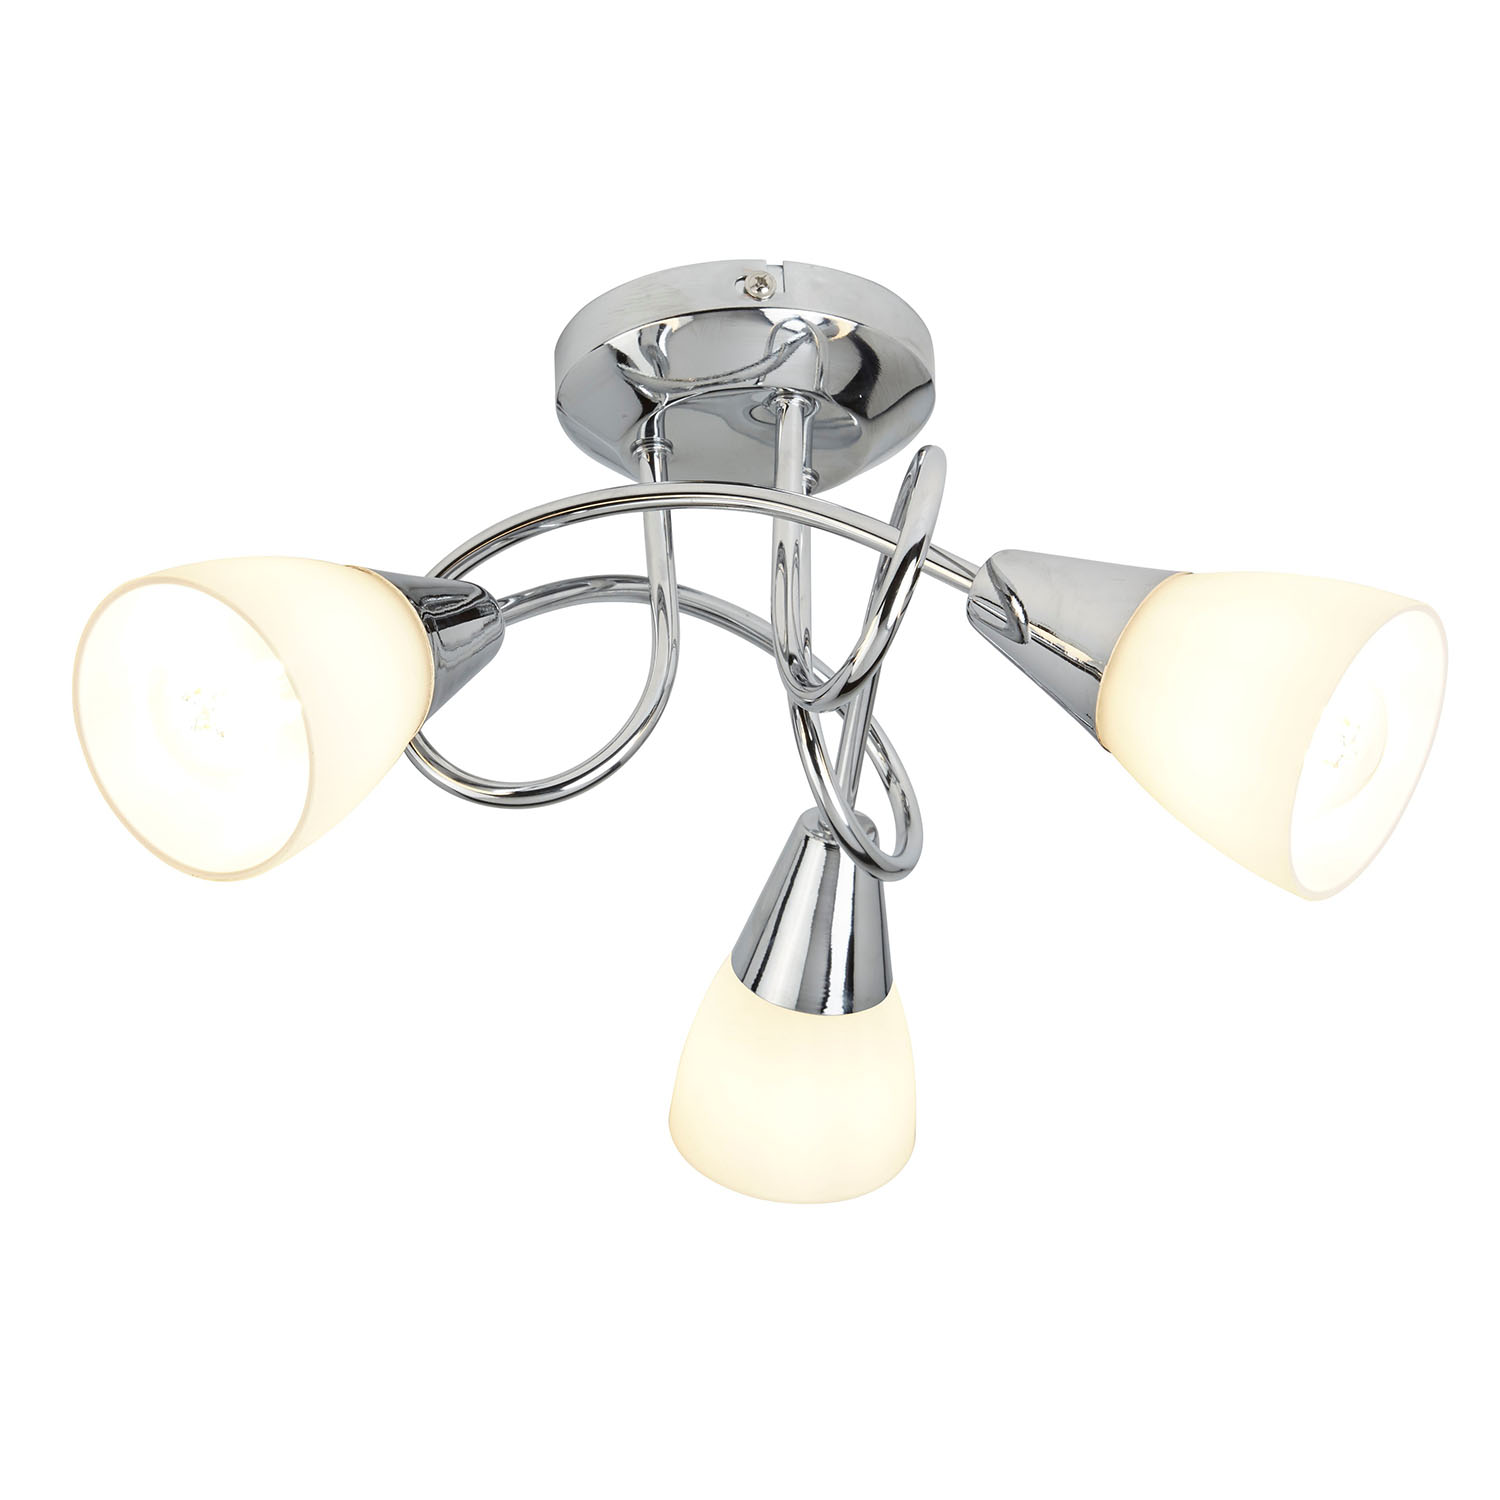 Image of Casa 3 Light Ceiling Light with Shades, Silver